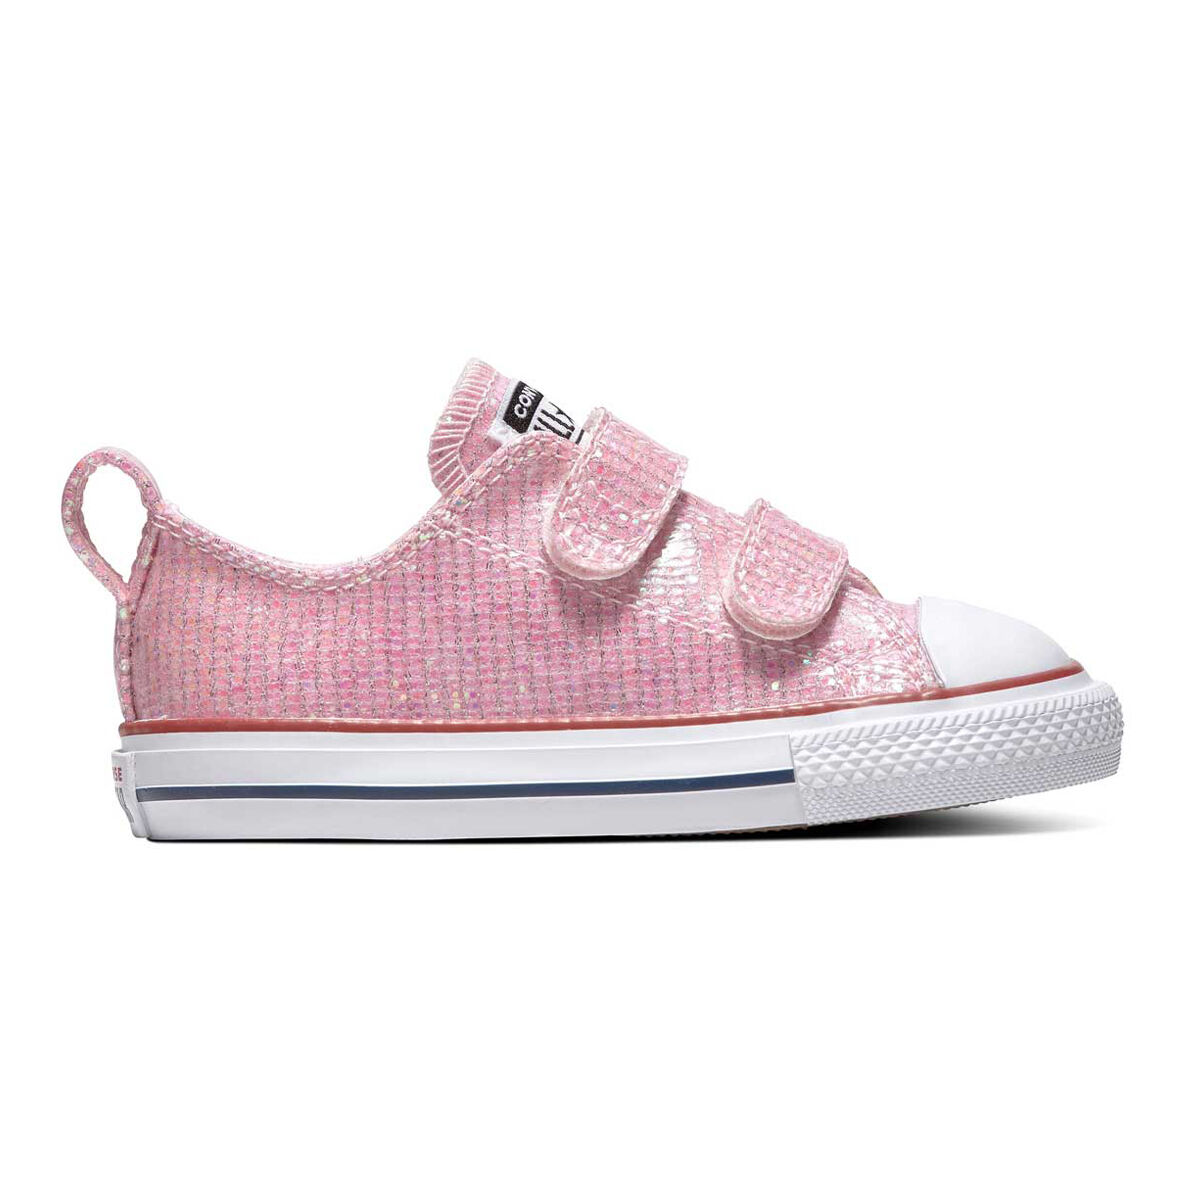 Converse Chuck Taylor All Star 2V Sparkle Toddlers Shoes